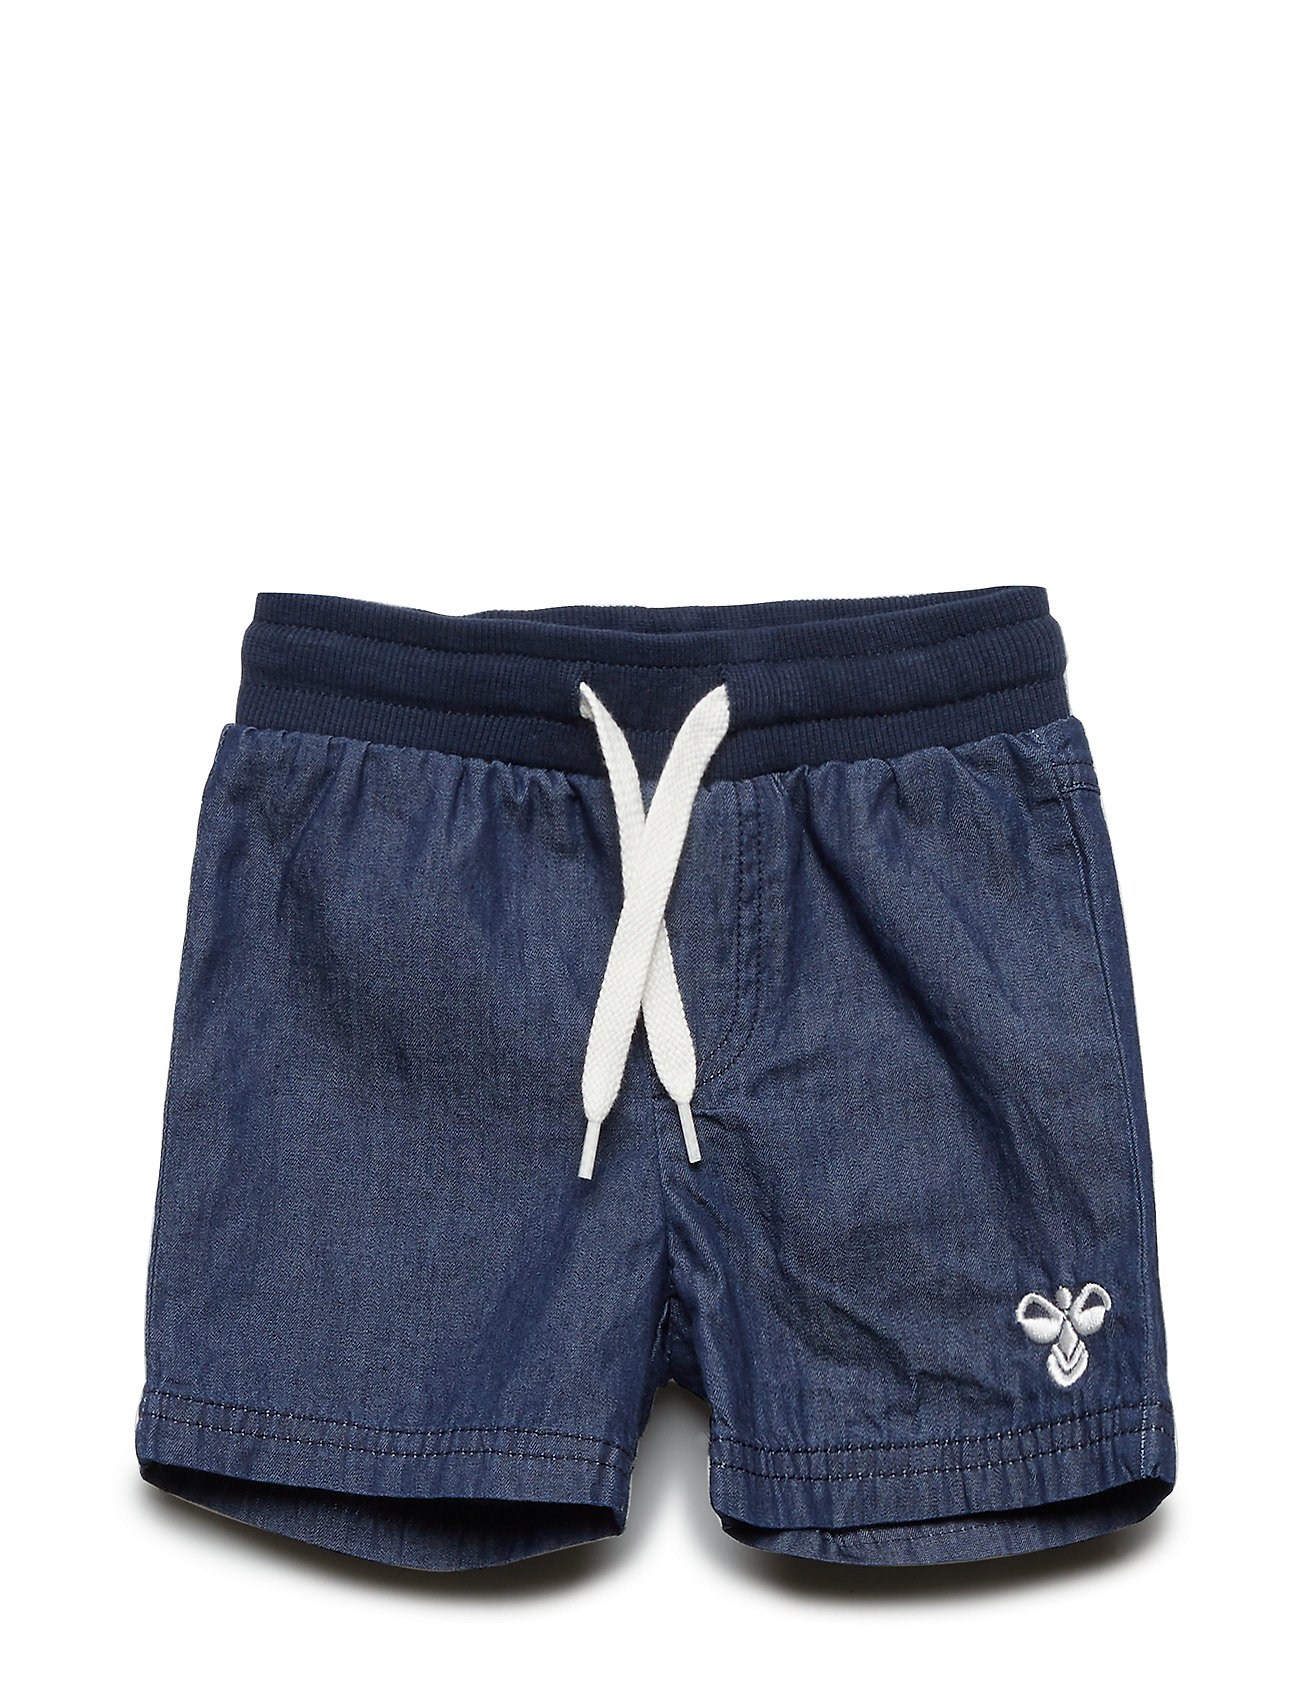 Hummel HMLJACO SHORTS - DENIM